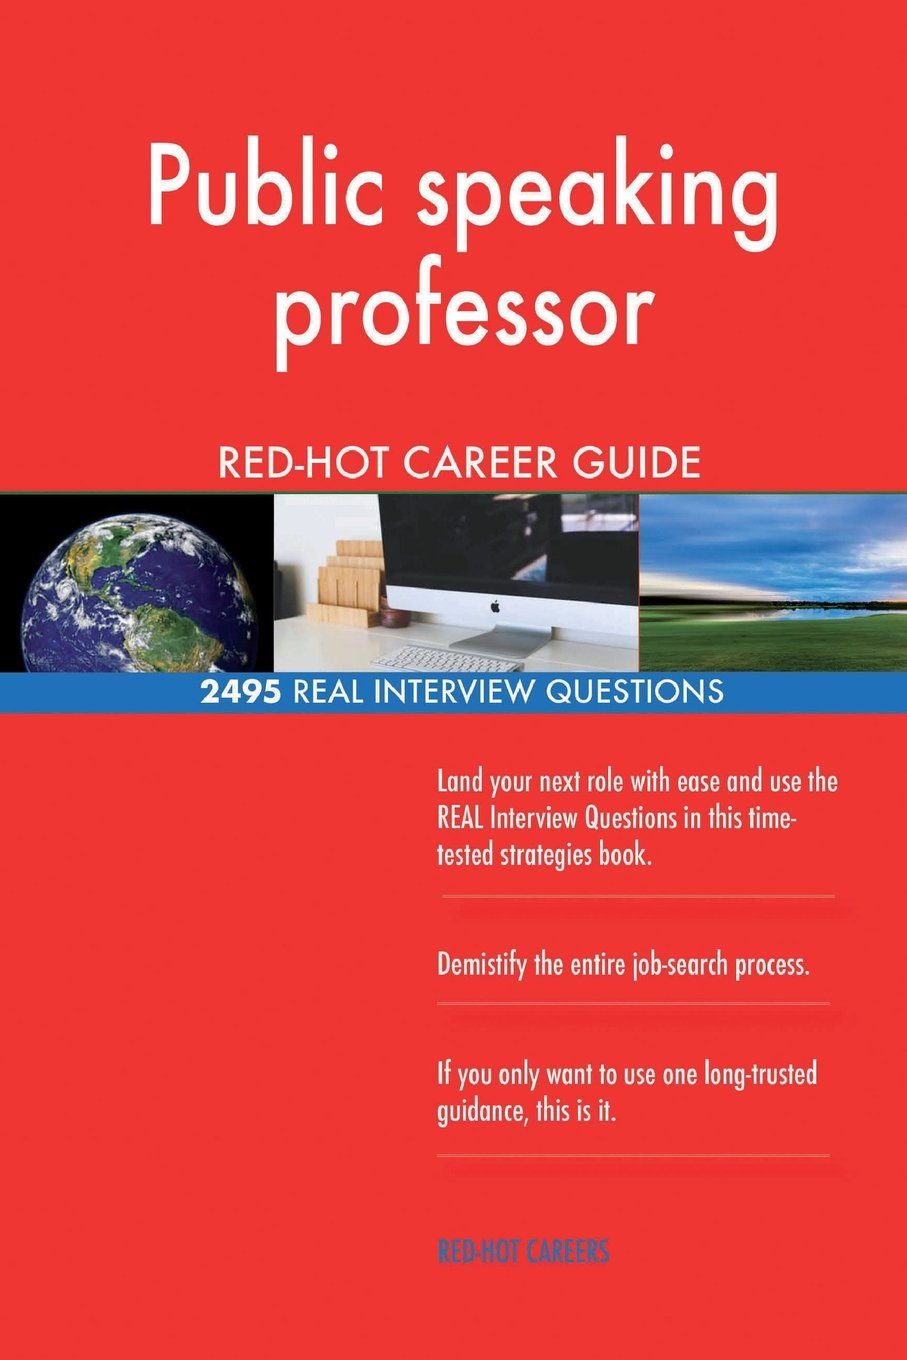 Download Public speaking professor RED-HOT Career Guide; 2495 REAL Interview Questions PDF ePub book